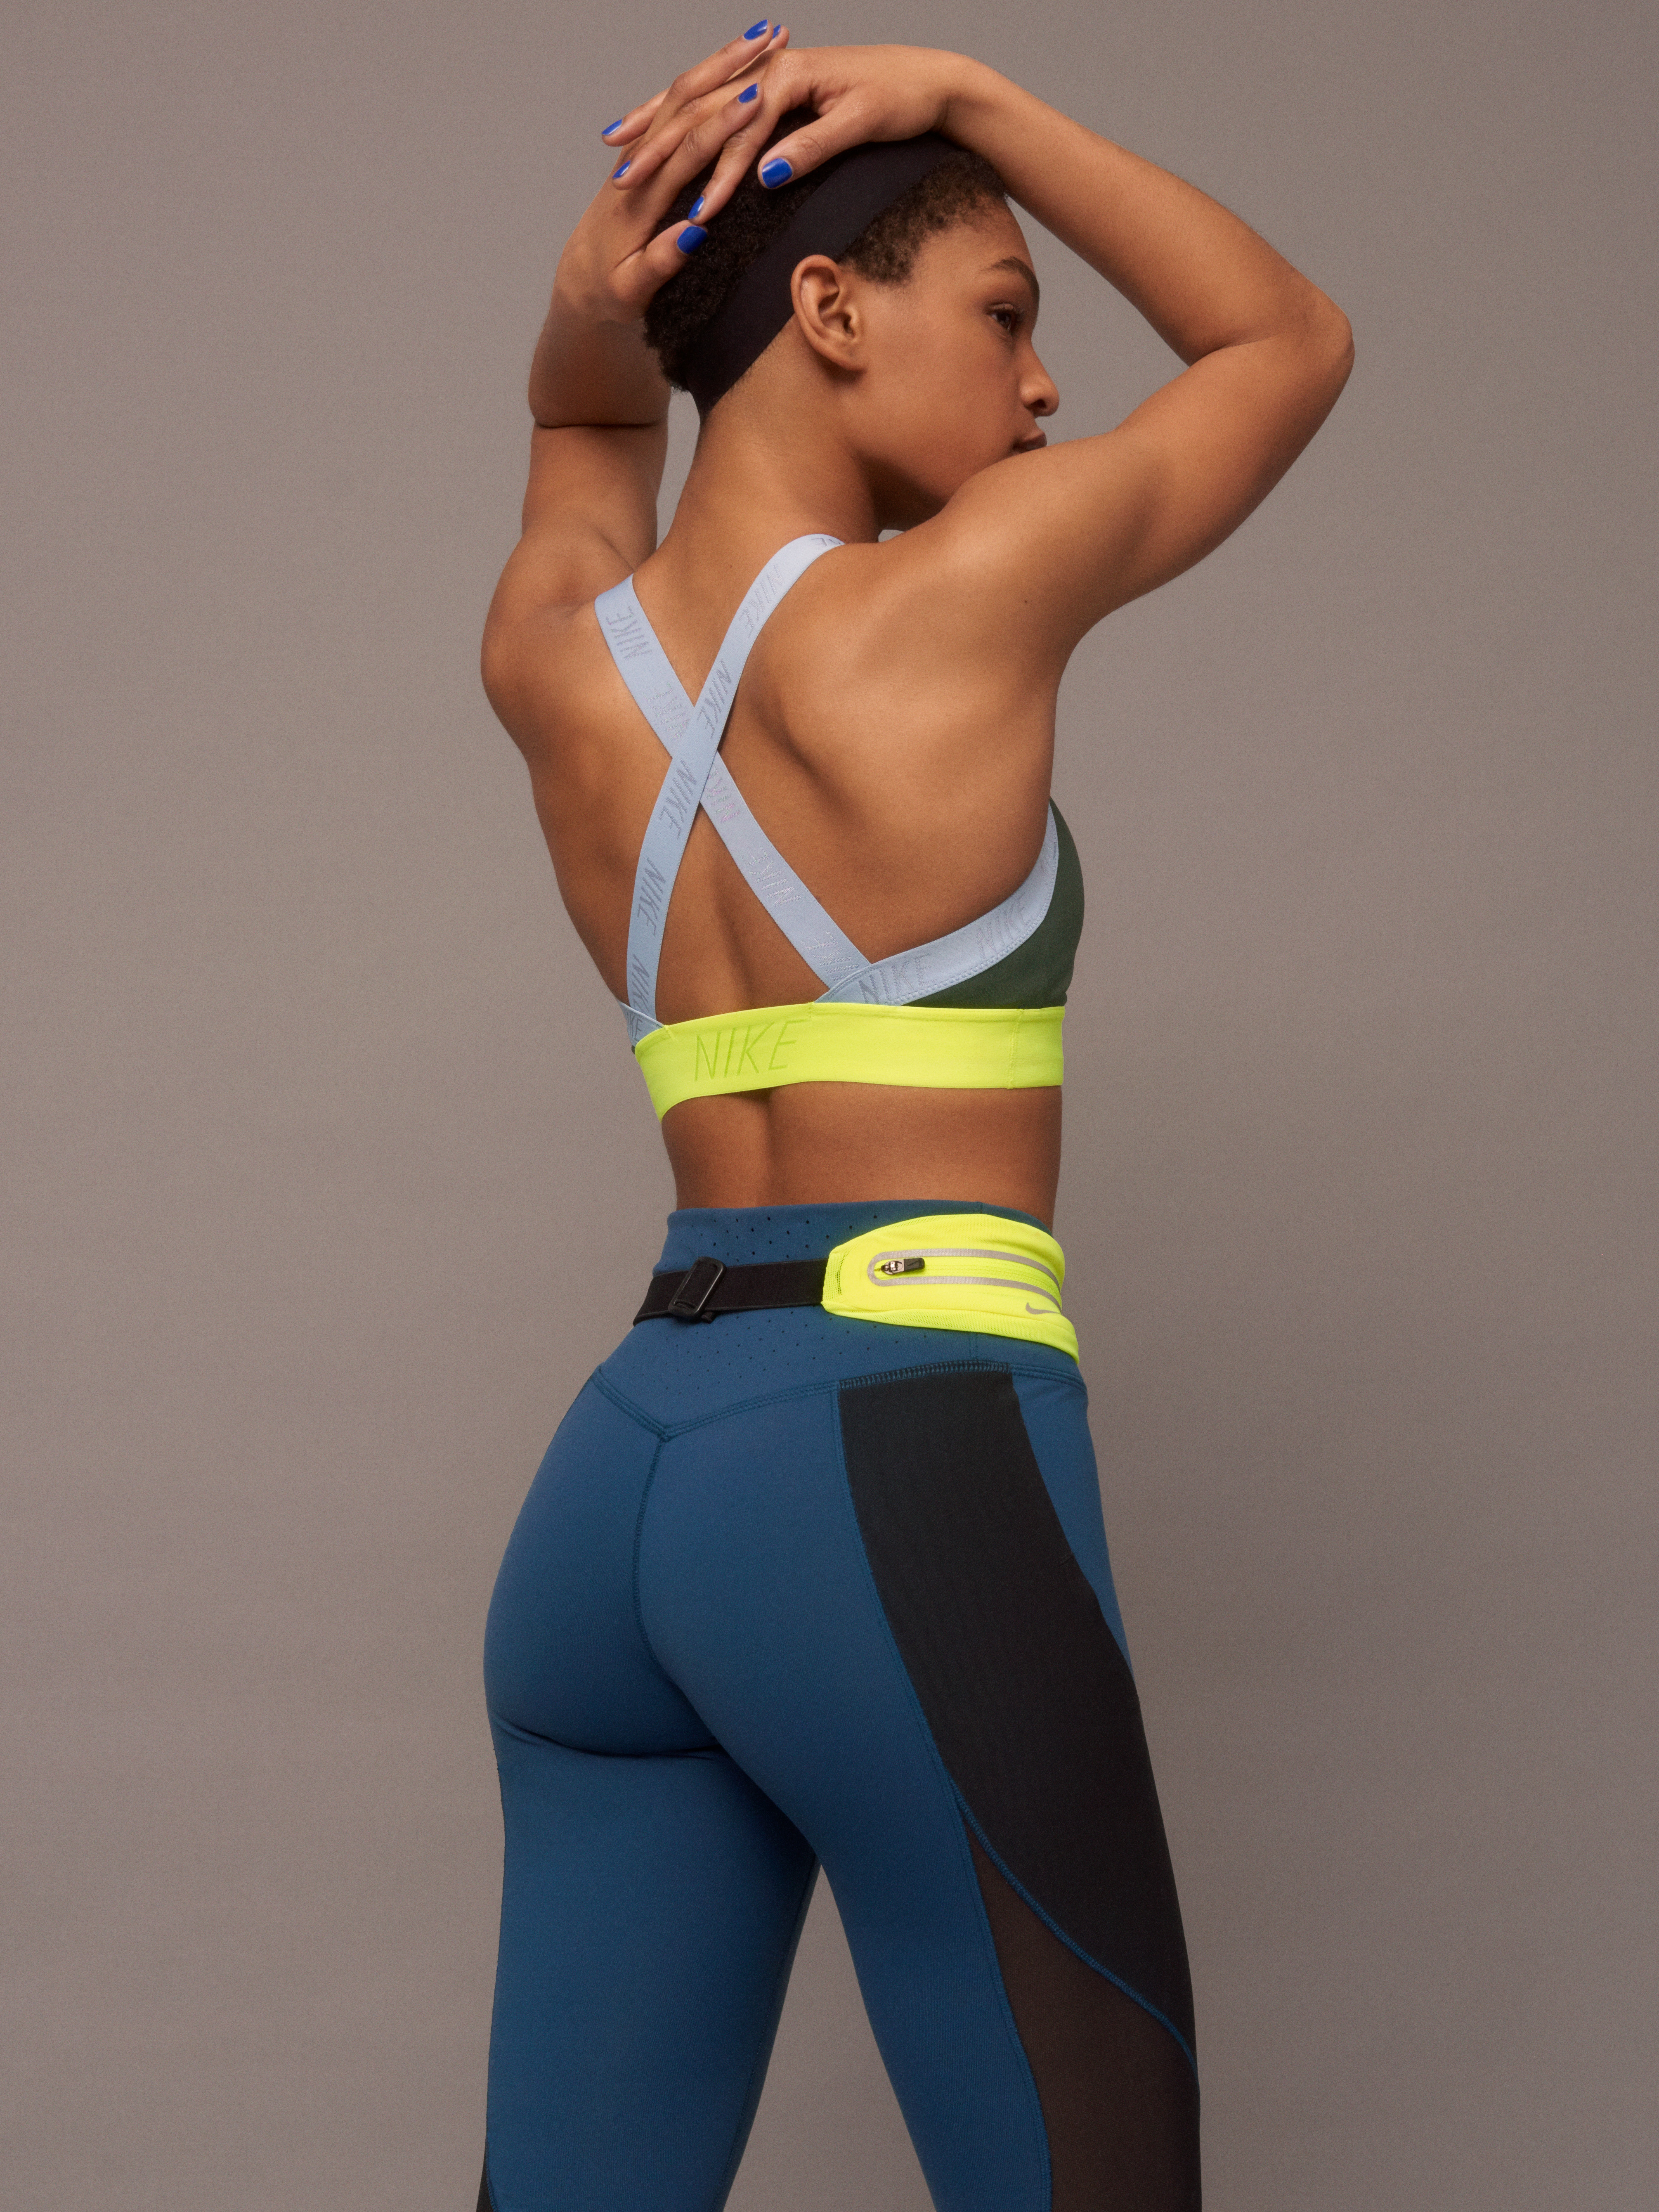 NikeWomen FA 17 Collection Look 11 back